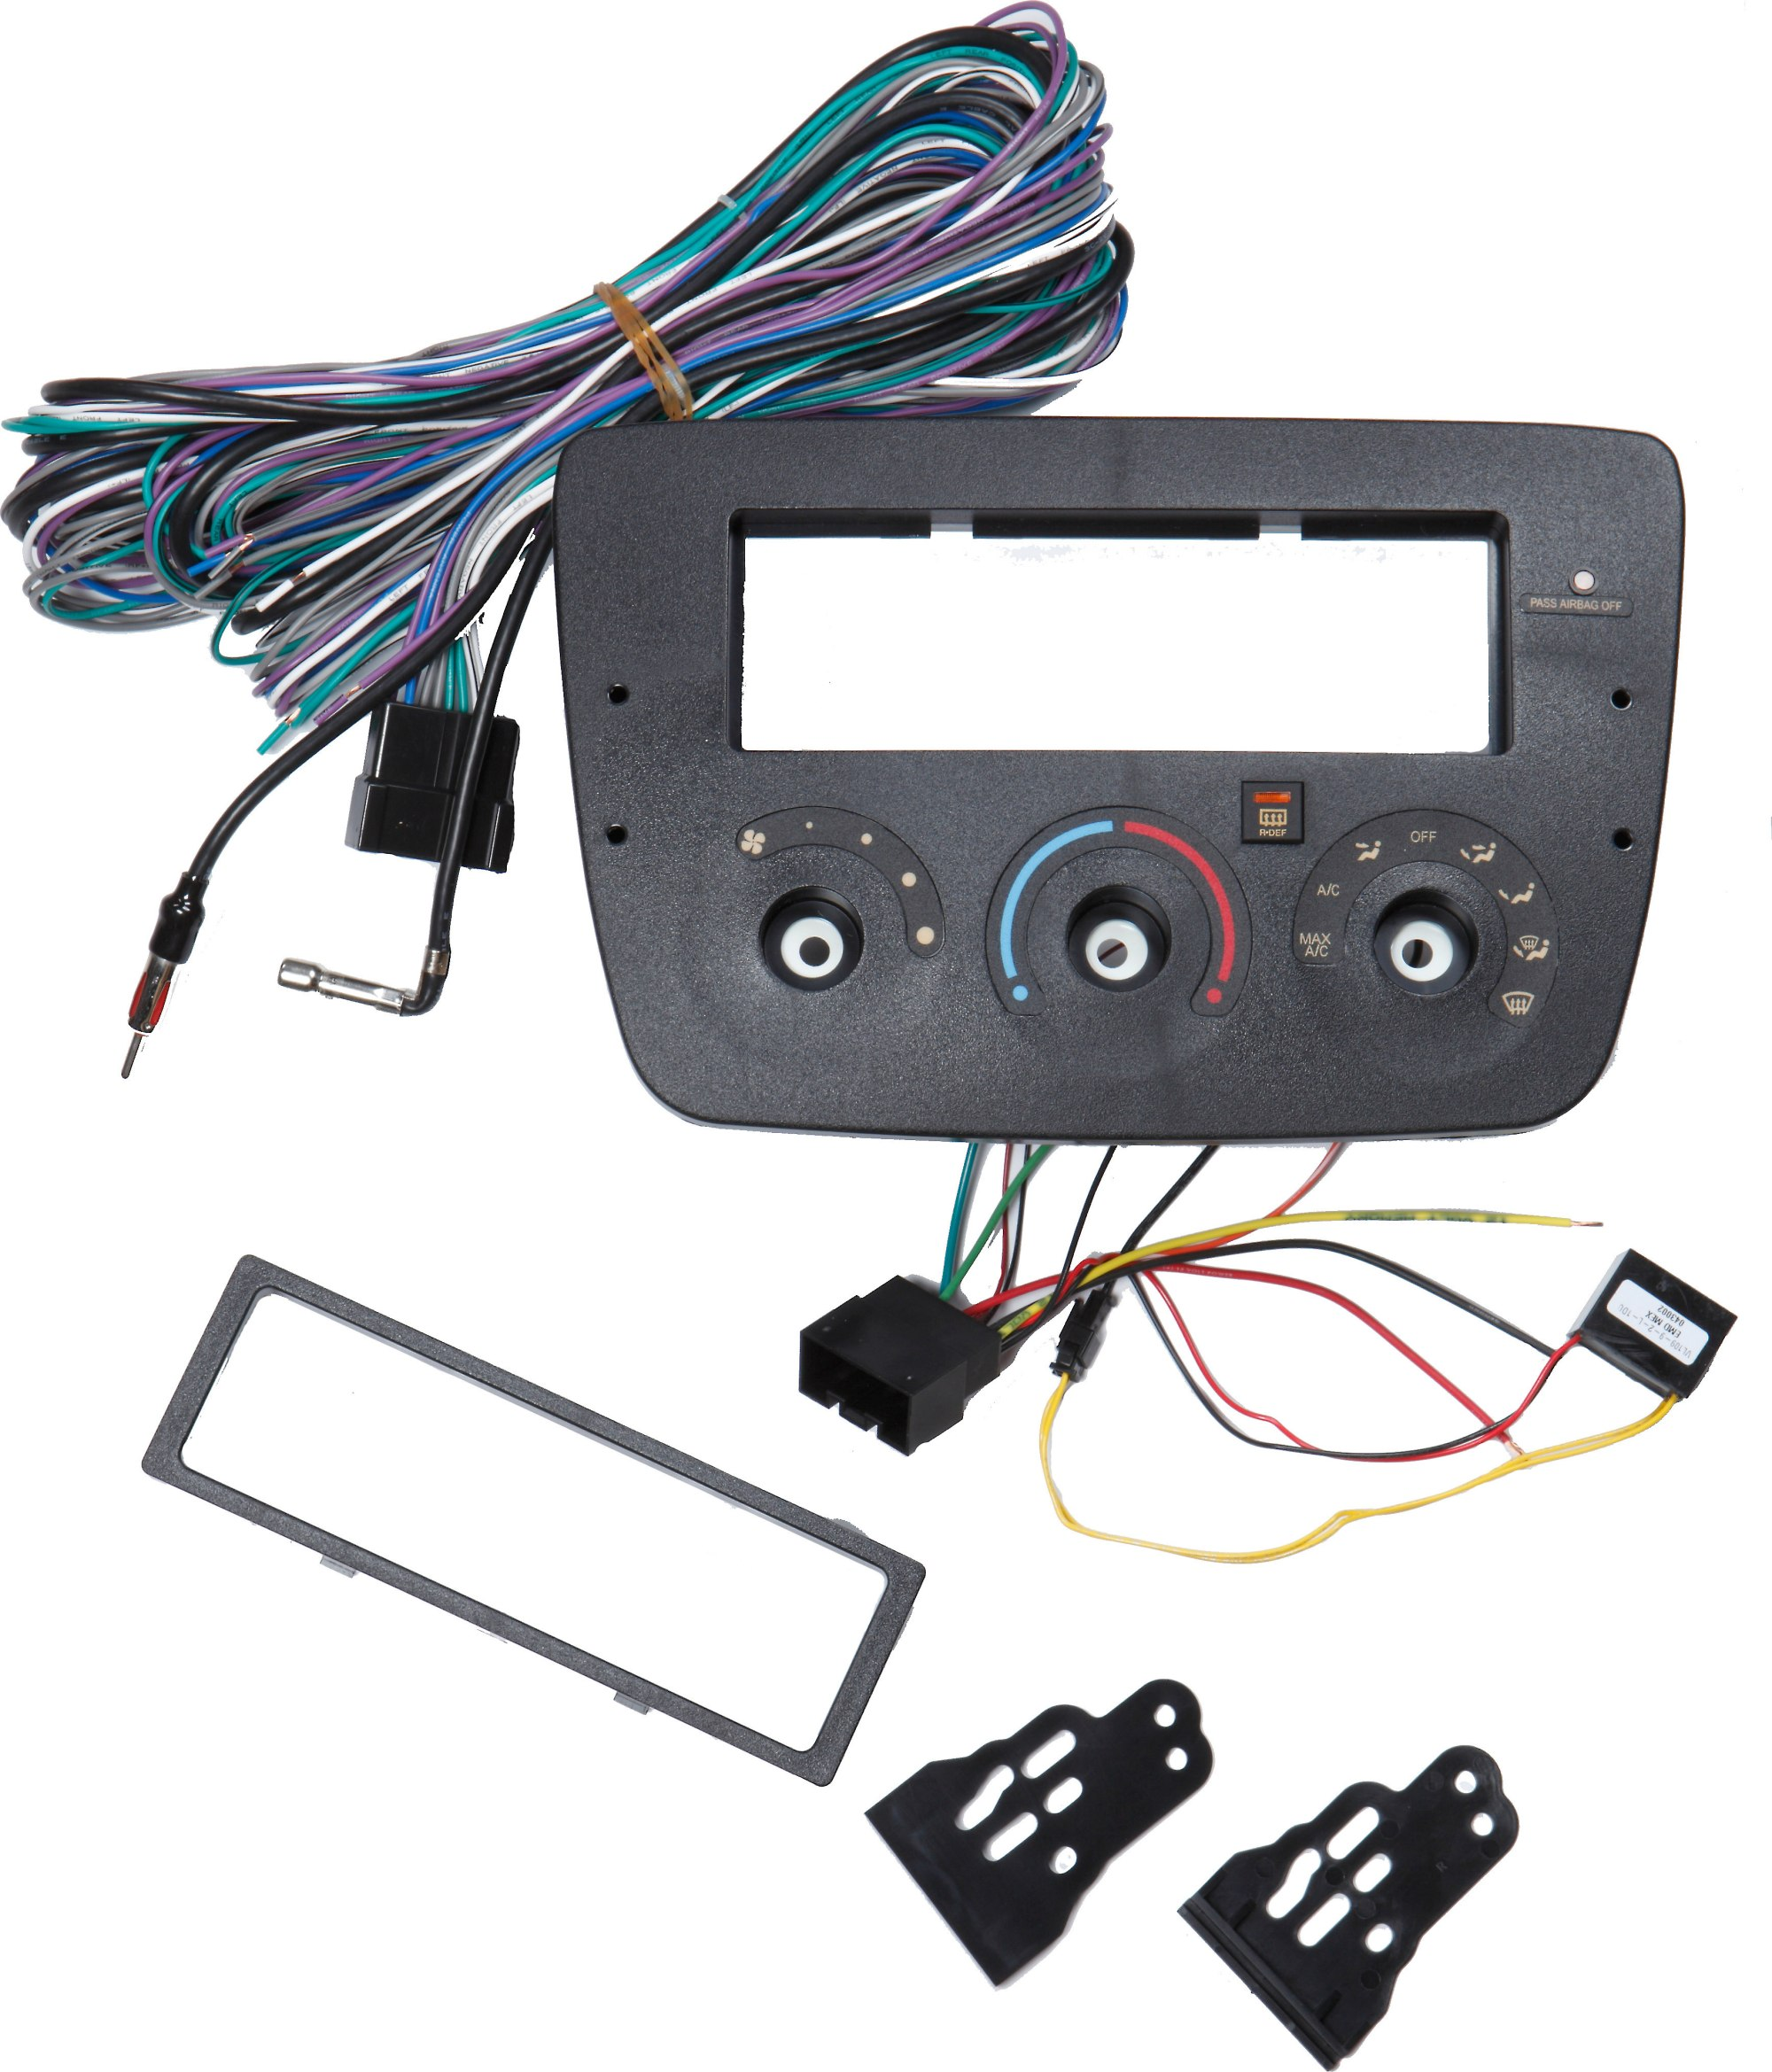 hight resolution of metra 99 5717 dash and wiring kit install and connect a new car stereo in your 2004 up ford taurus or mercury sable at crutchfield com